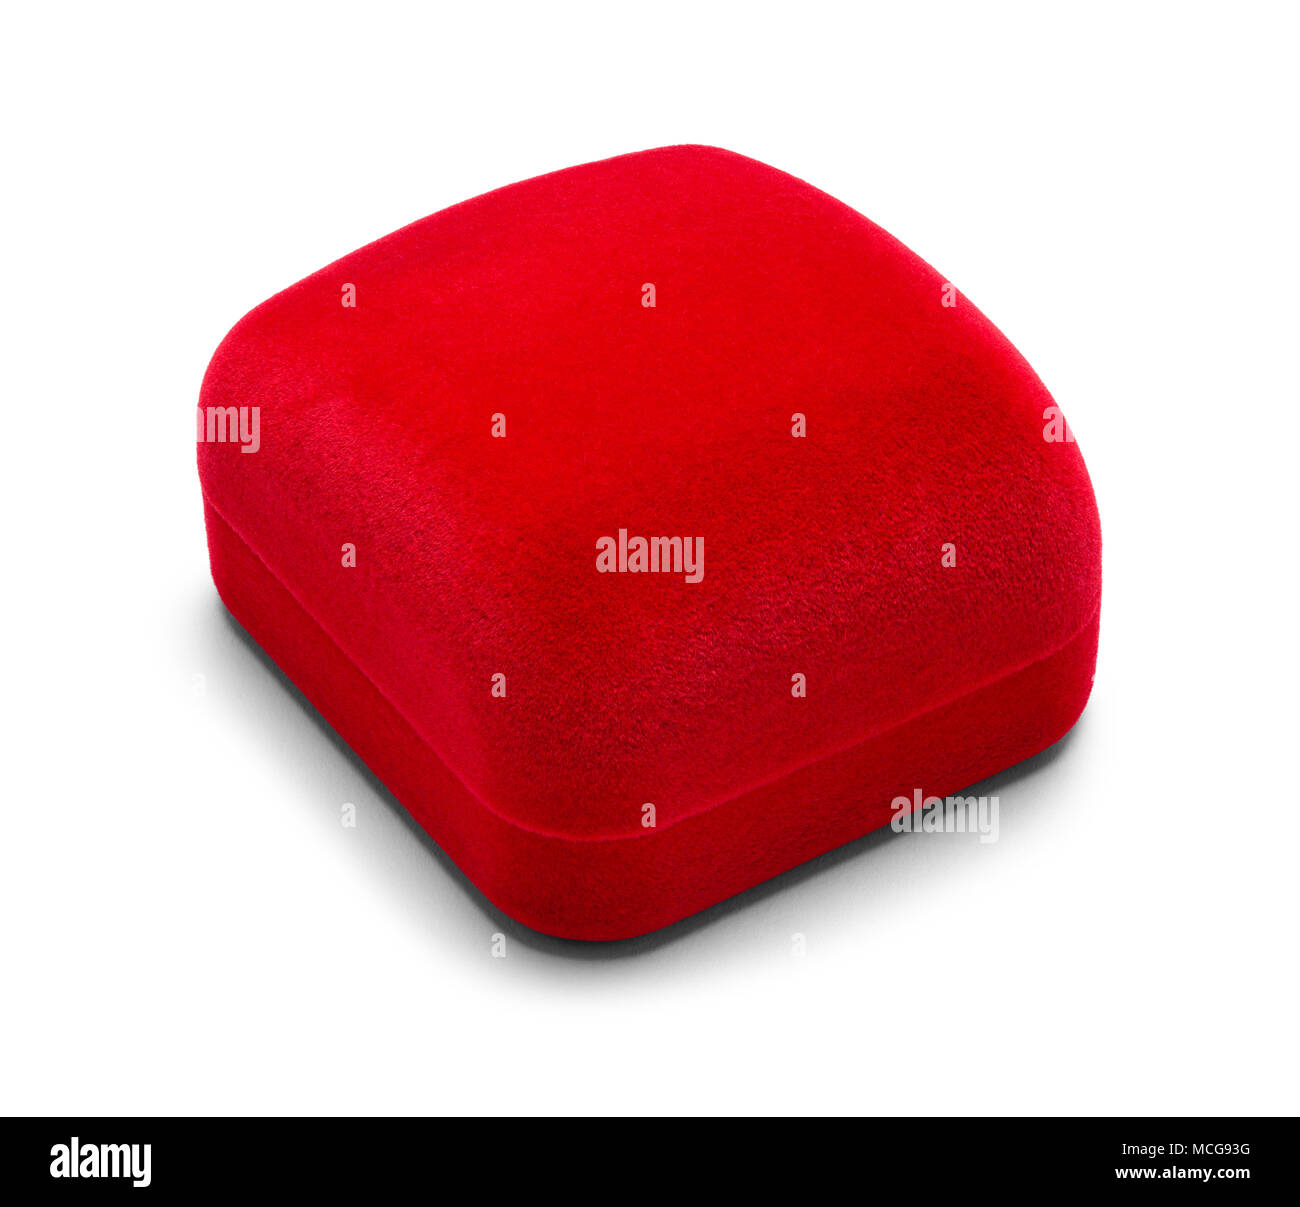 Closed Red Velvet Jewelry Box Isolated on a White Background Stock